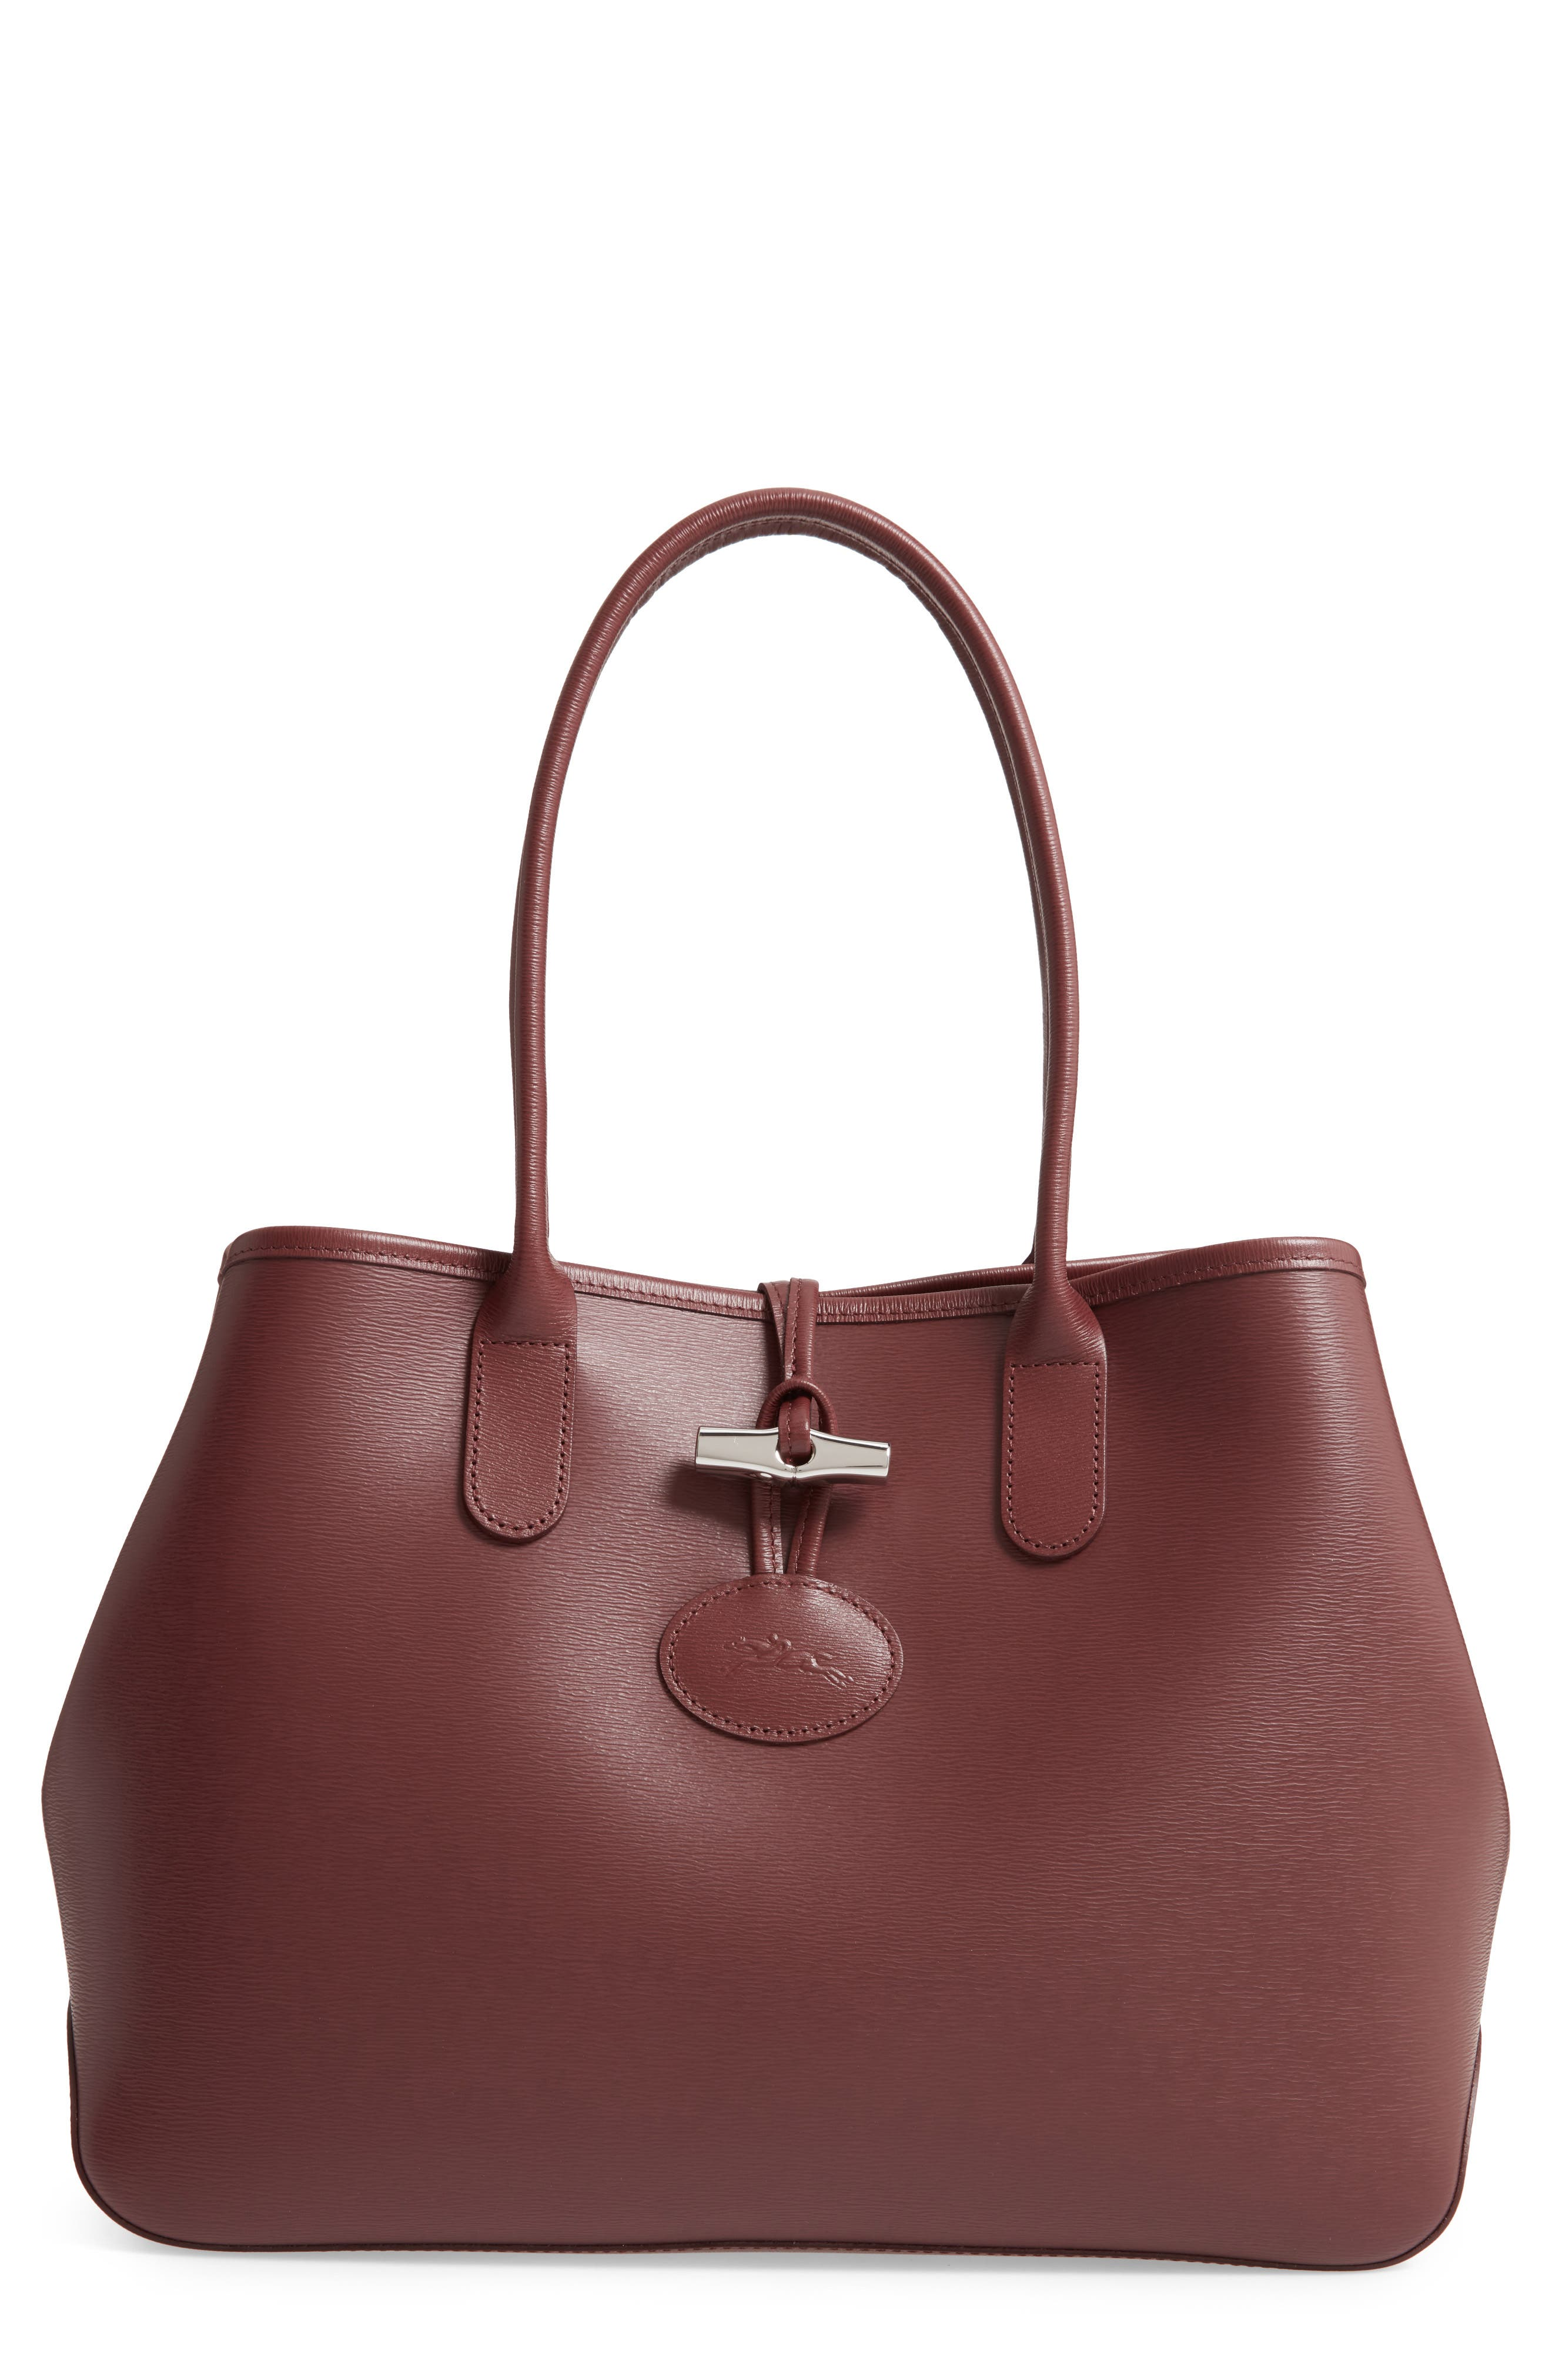 f033cc190c2d Tote Bags for Women: Leather, Coated Canvas, & Neoprene | Nordstrom